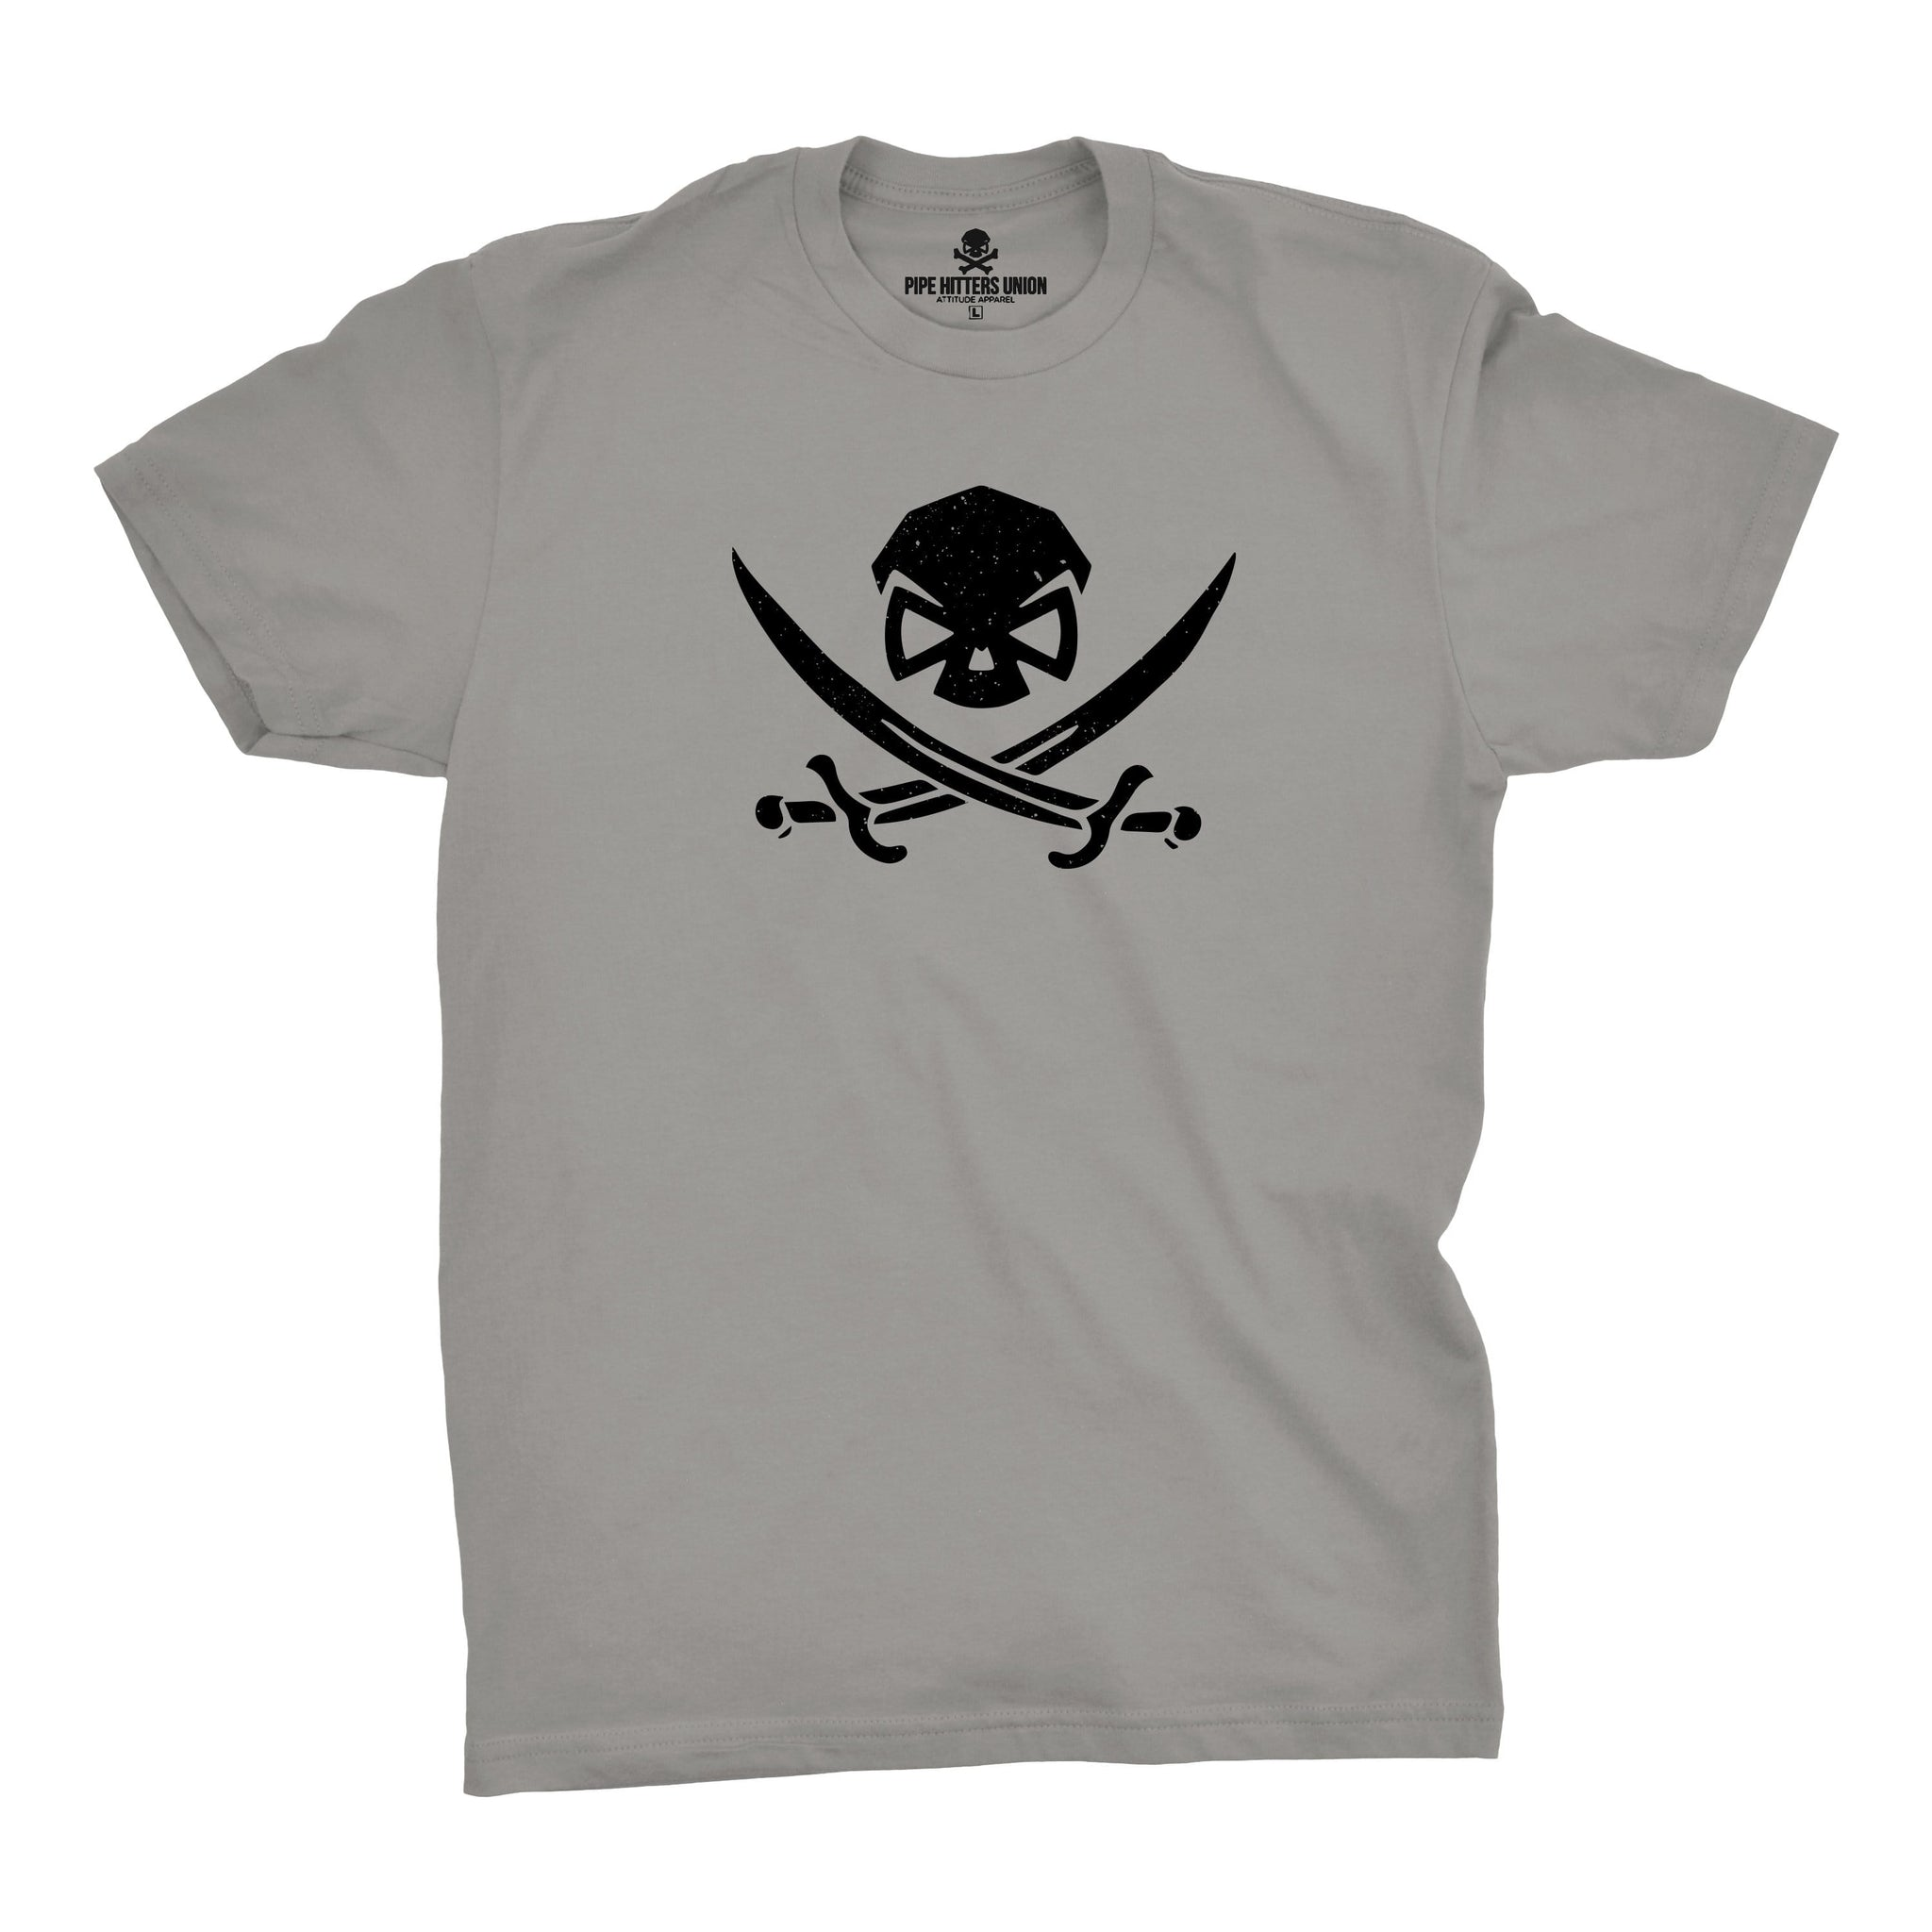 High Seas Hitter - Grey - T-Shirts - Pipe Hitters Union